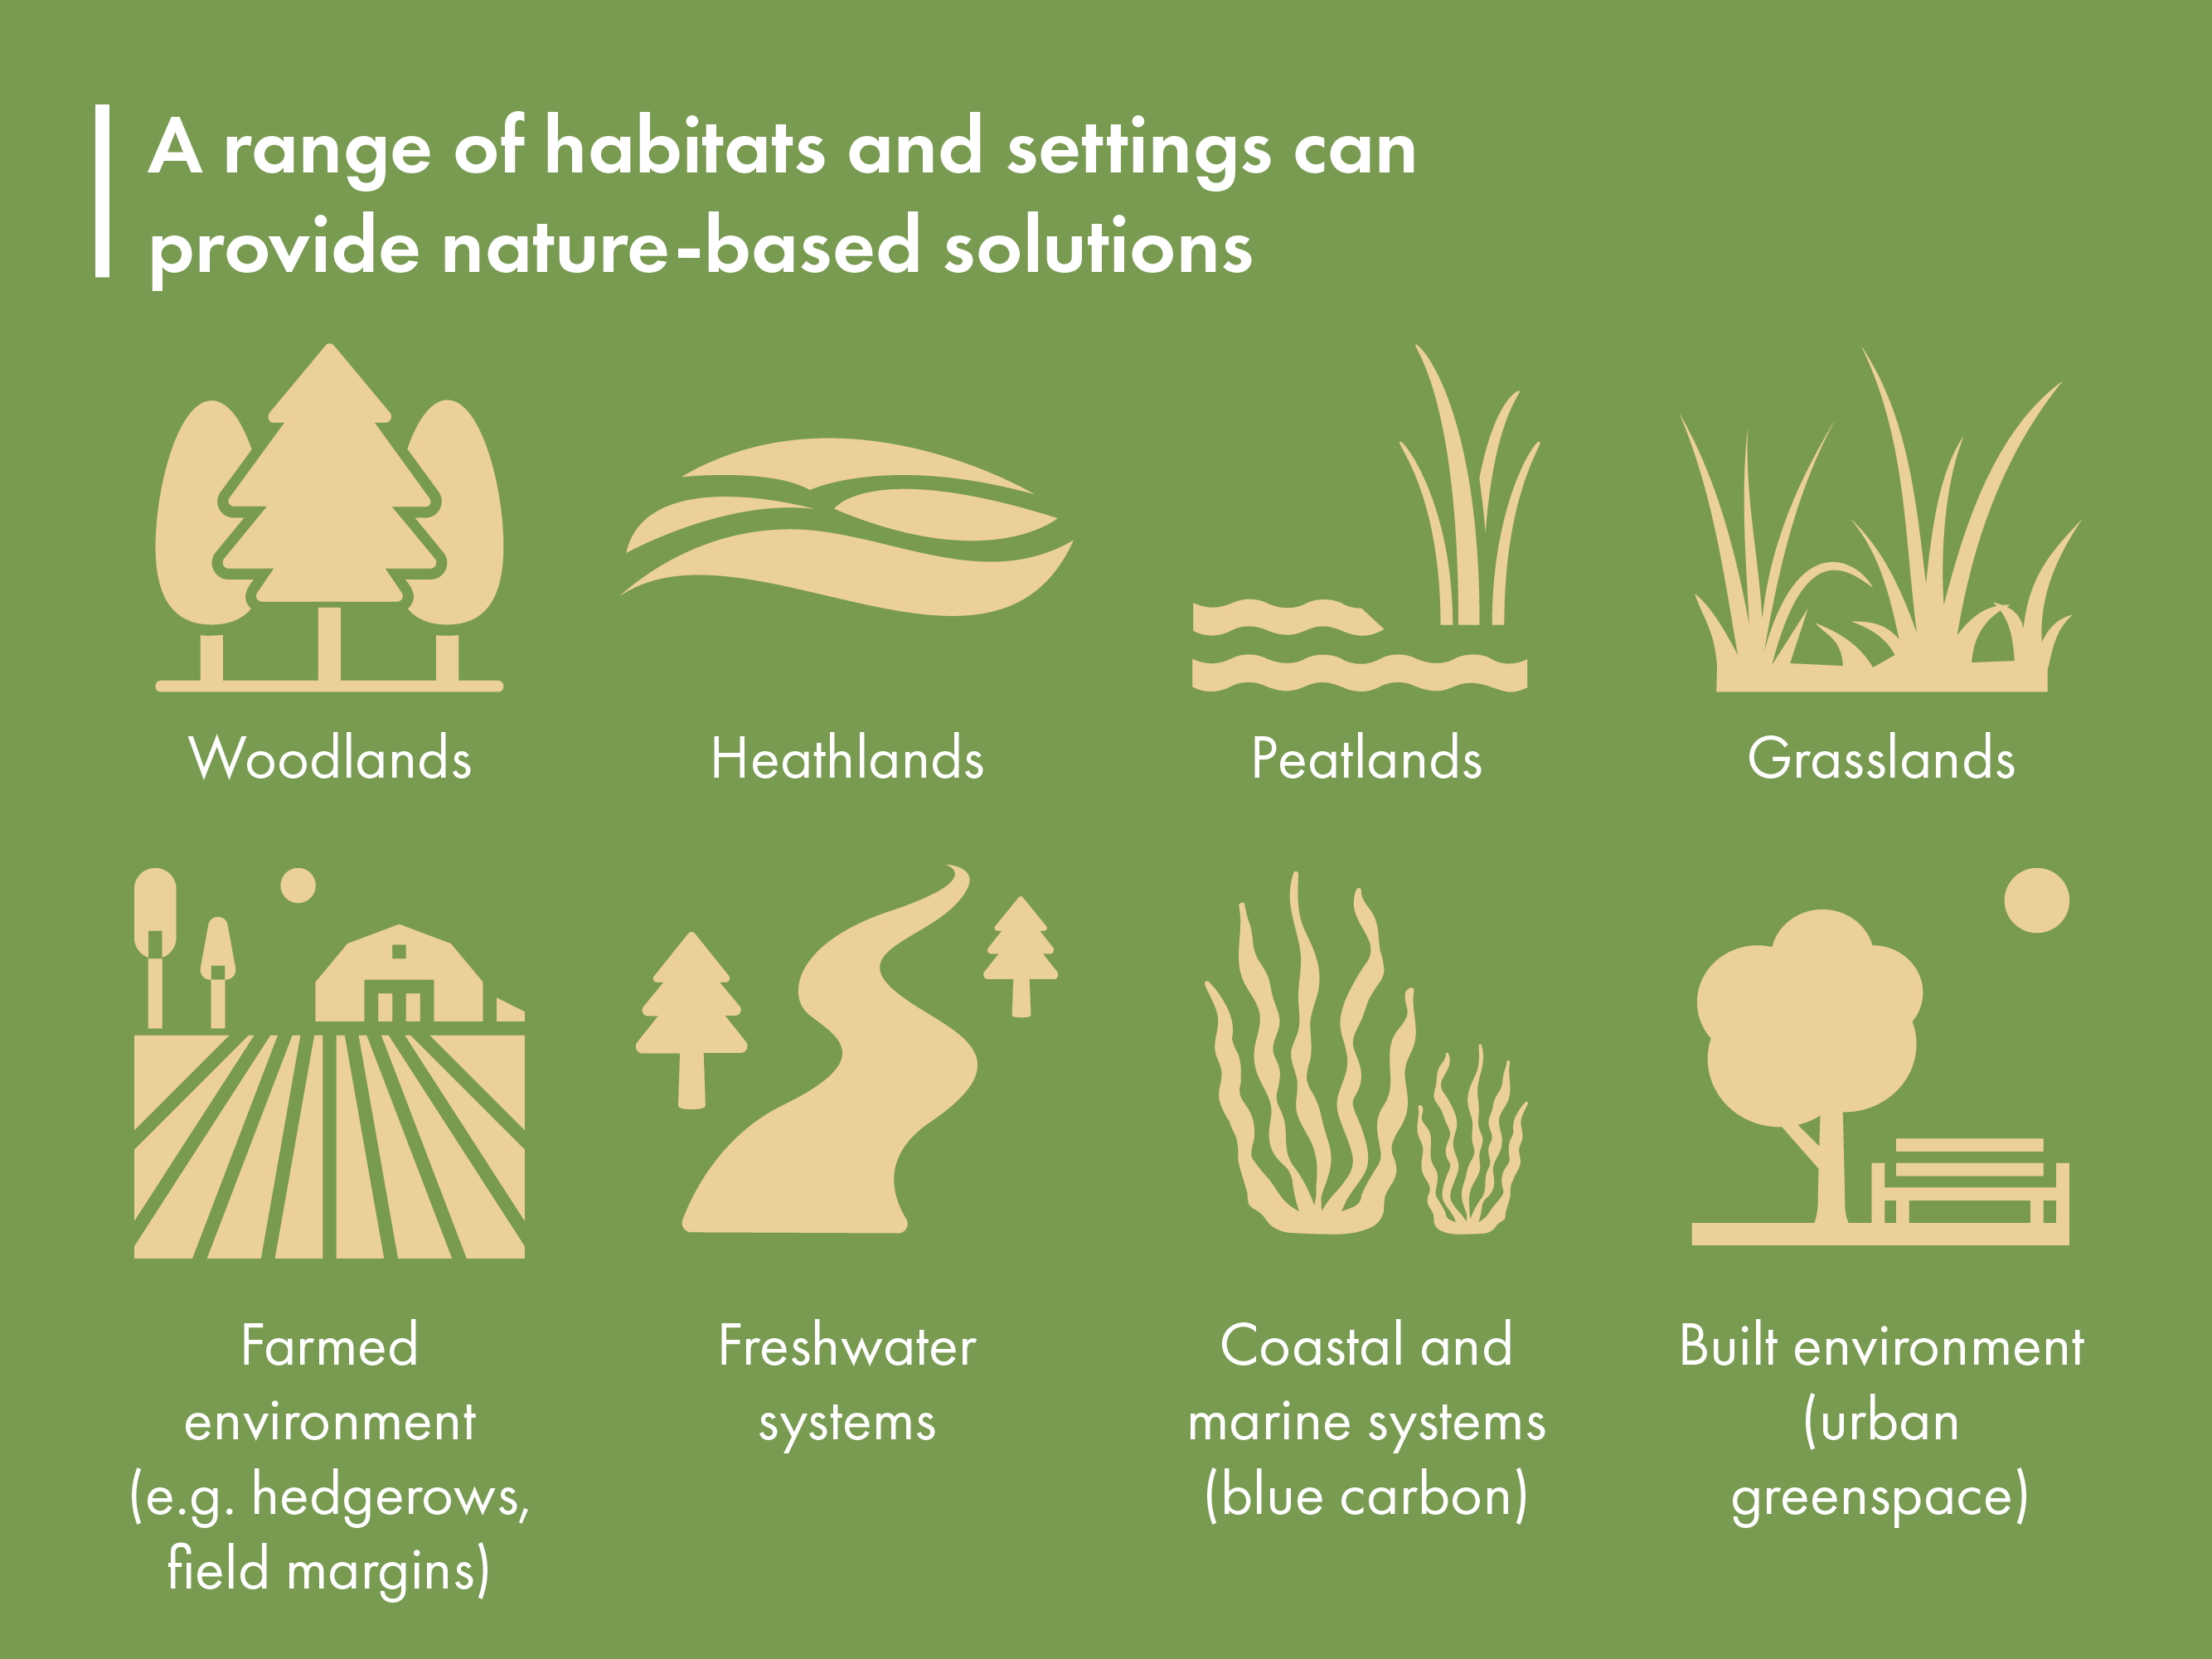 A range of habitats and settings can provide nature-based solutions. These include woodlands, heathlands, peatlands, grasslands, farmed environments, for example through hedgerows and field margins, freshwater systems, coastal and marine systems and urban greenspaces.